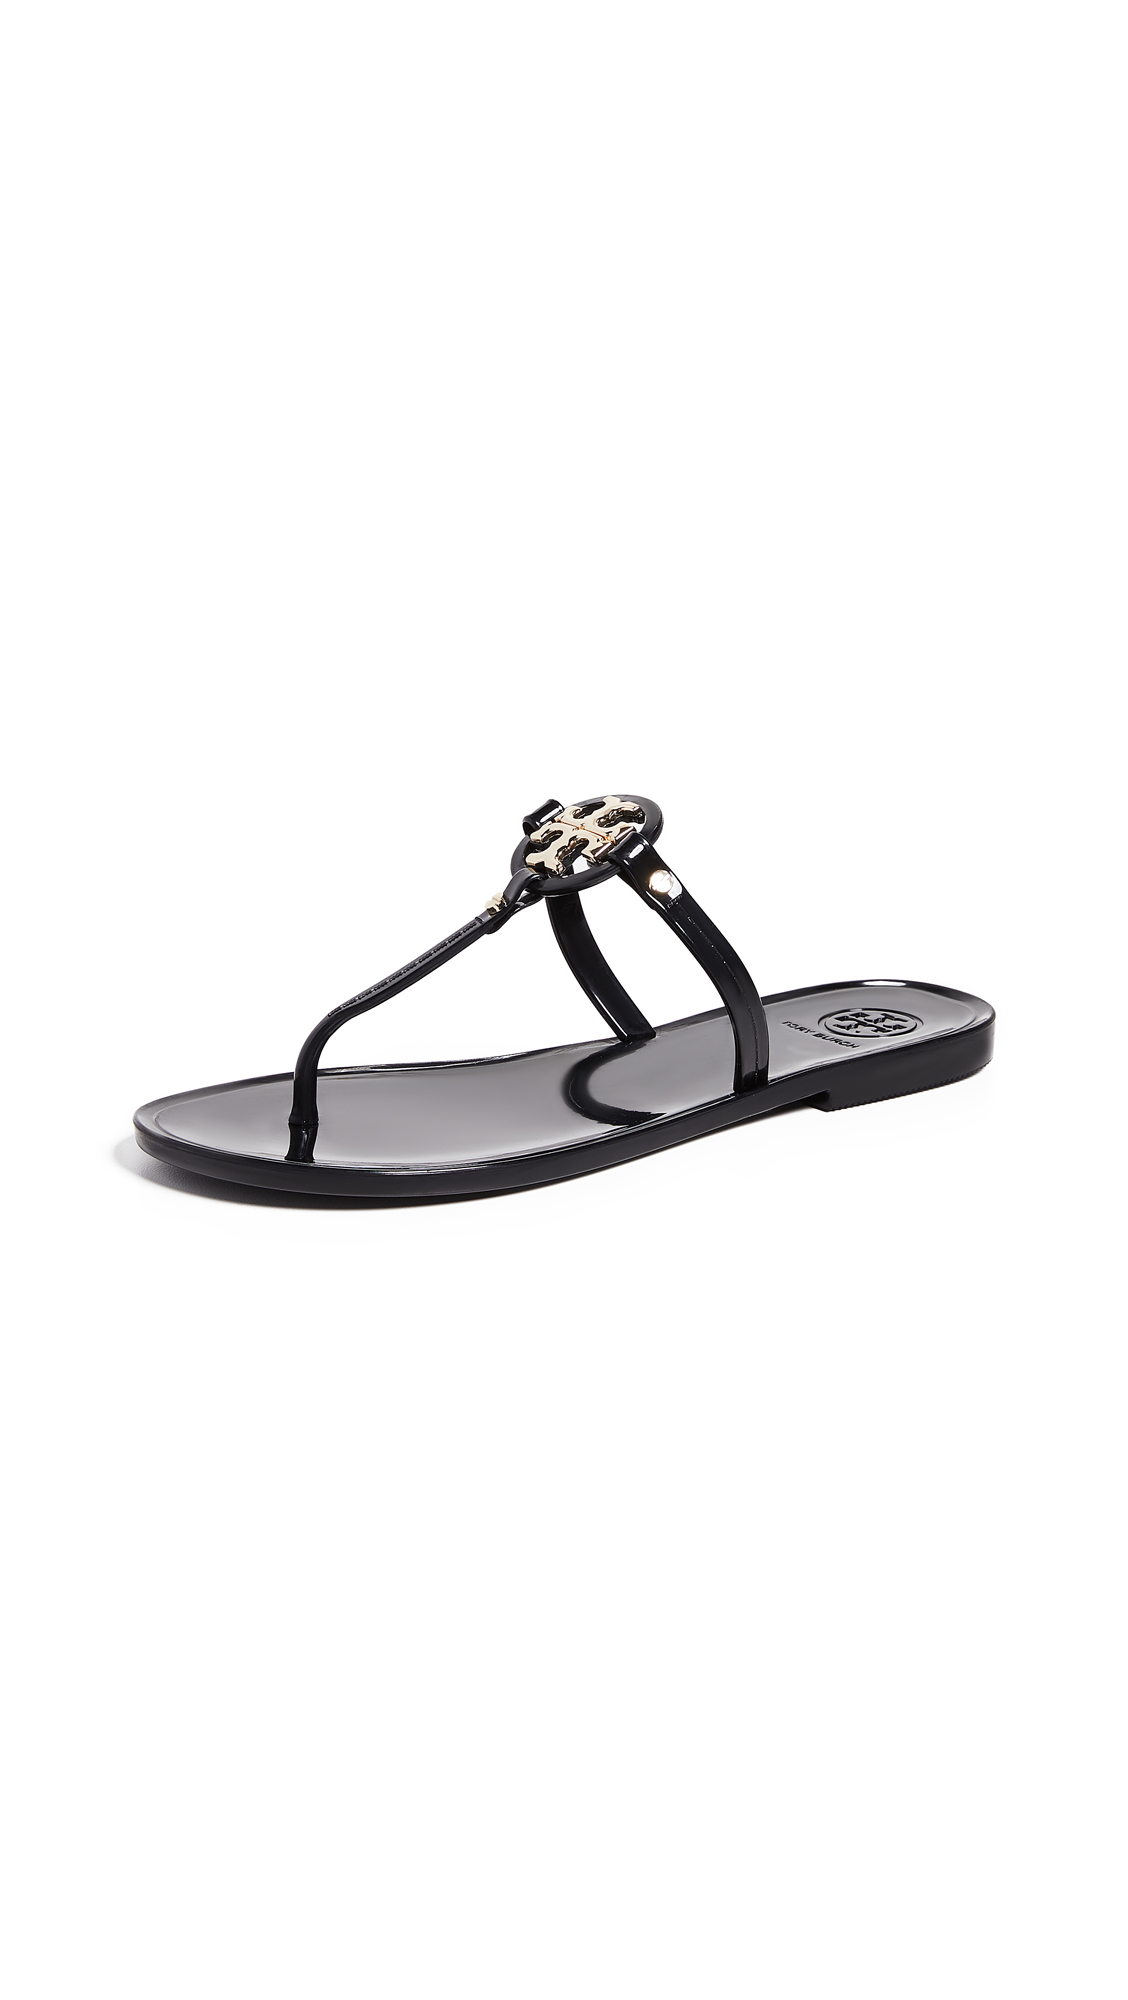 Tory Burch Mini Miller Thong Flip Flops